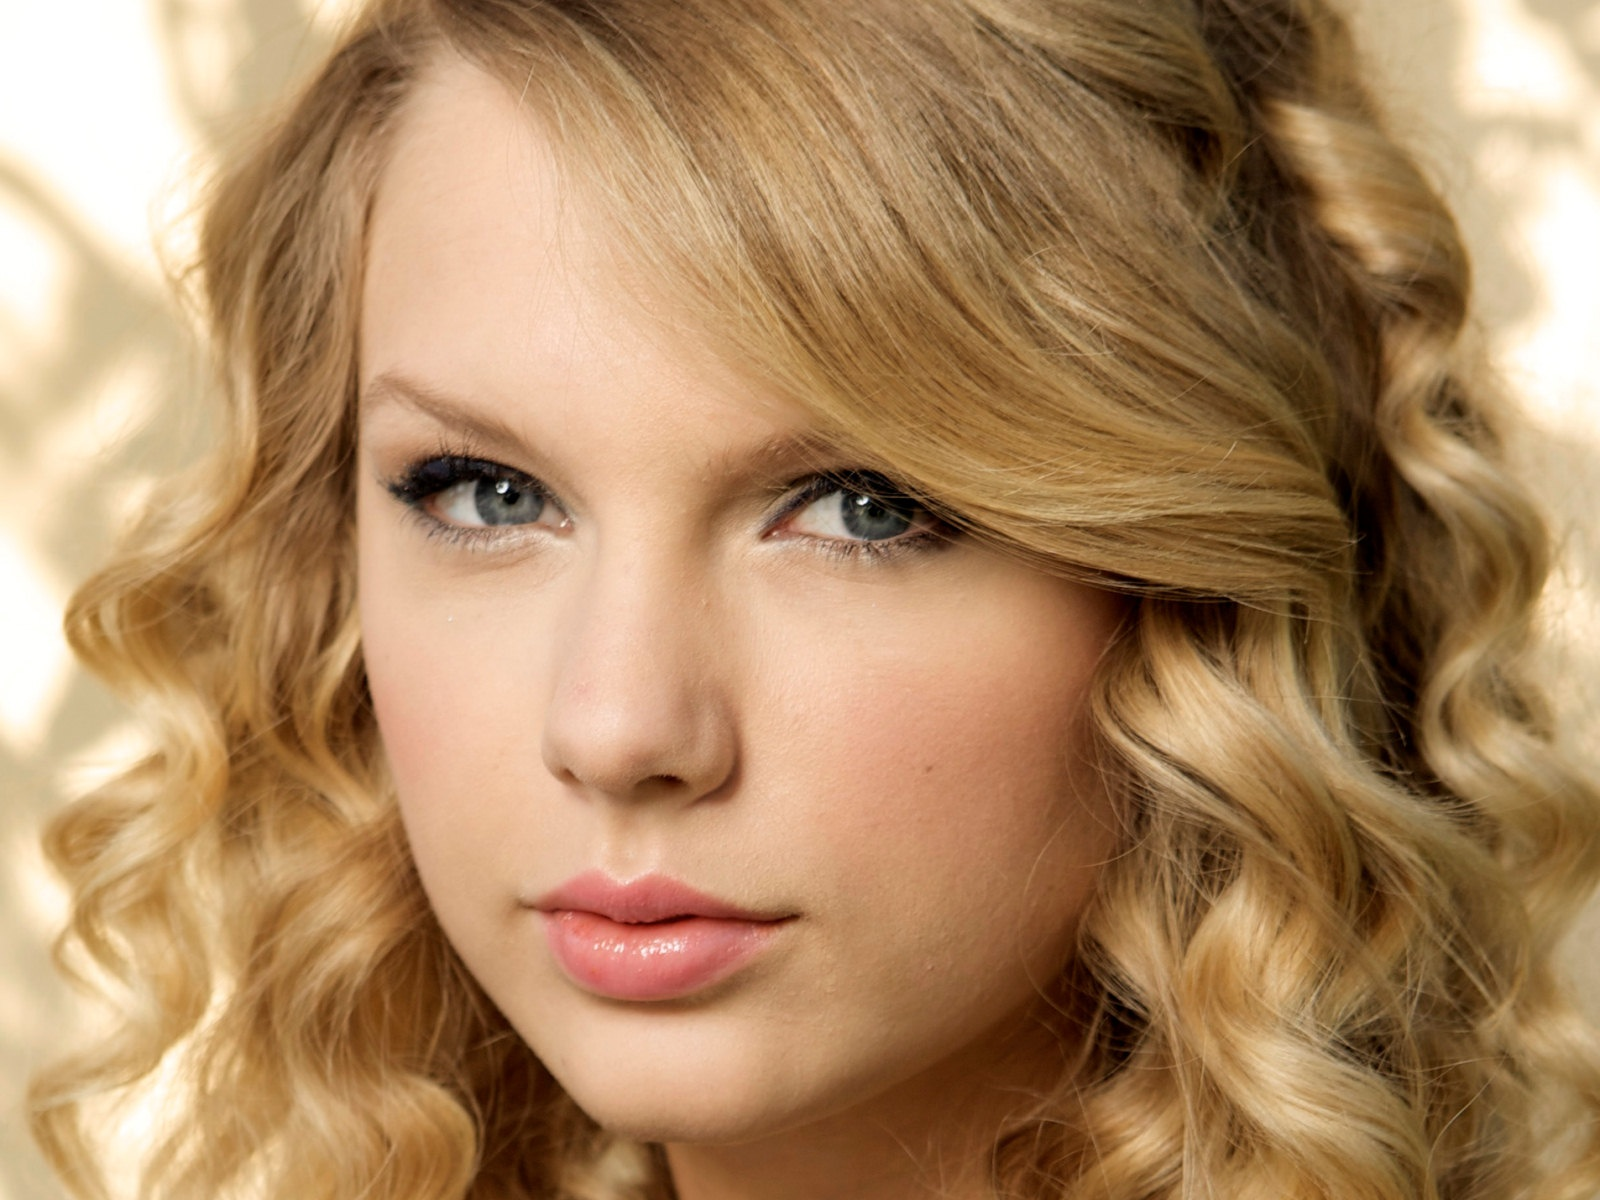 http://2.bp.blogspot.com/-miY-hSt7wc0/T8NqOs-TpqI/AAAAAAAAALY/j-in6pSeFE0/s1600/Taylor+Swift+wallpapers+2.jpg